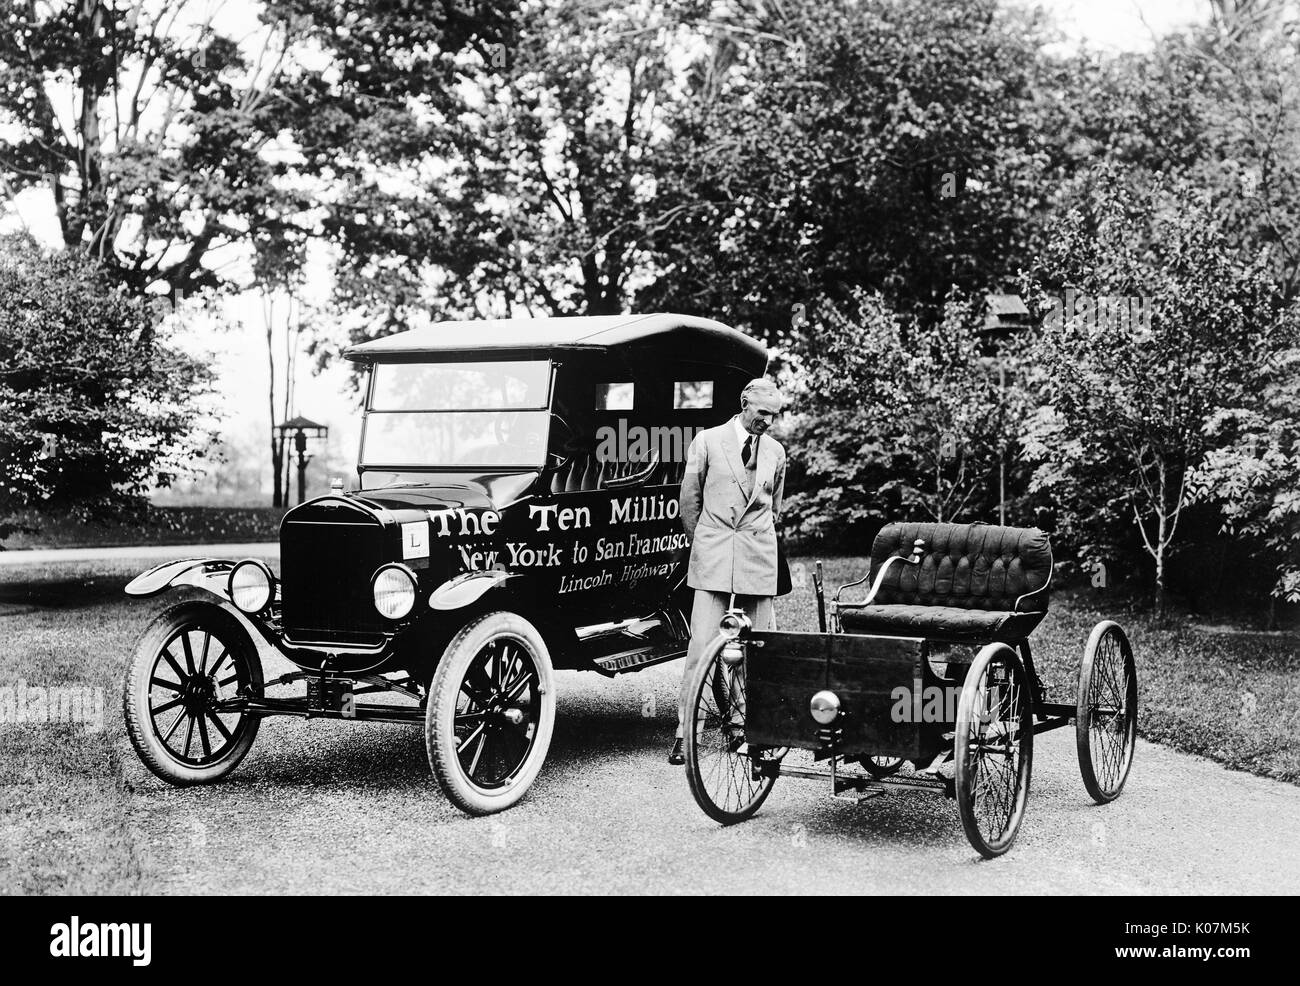 The first and the ten millionth Fod Motor Car produced in America on ...